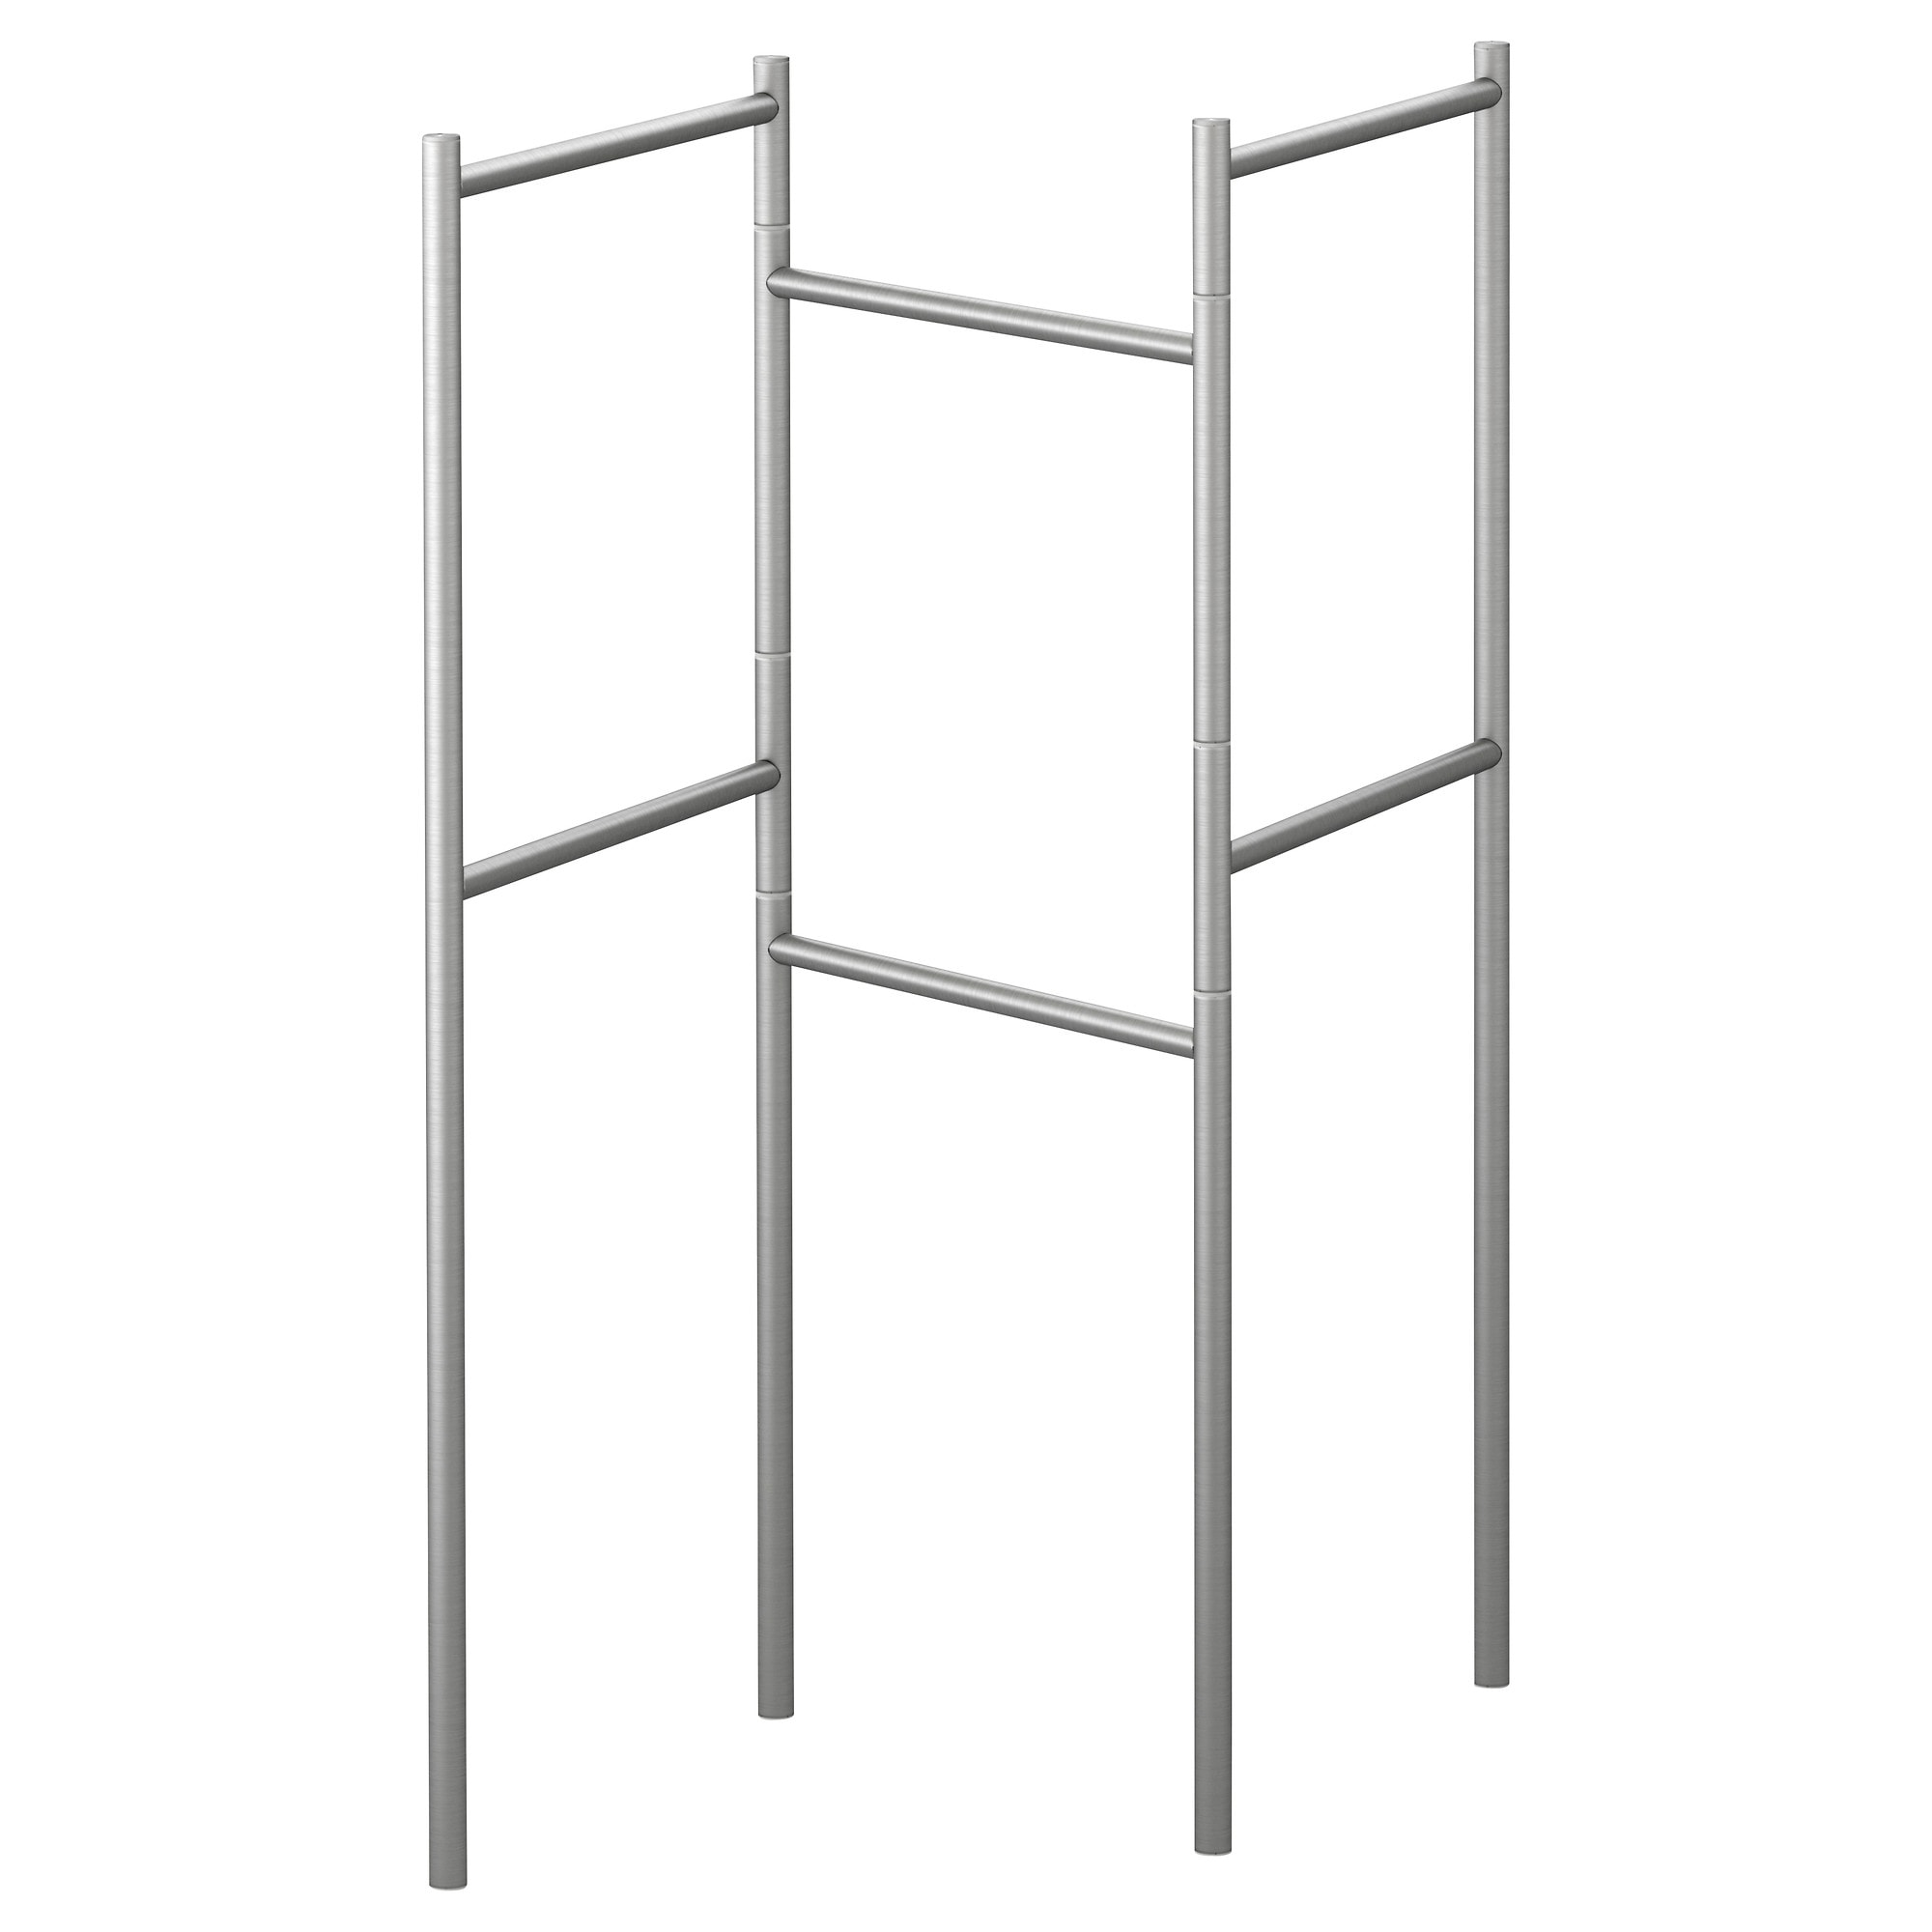 GRUNDTAL towel stand  stainless steel Width  25     Depth  13. Towel Rails   Holders   IKEA